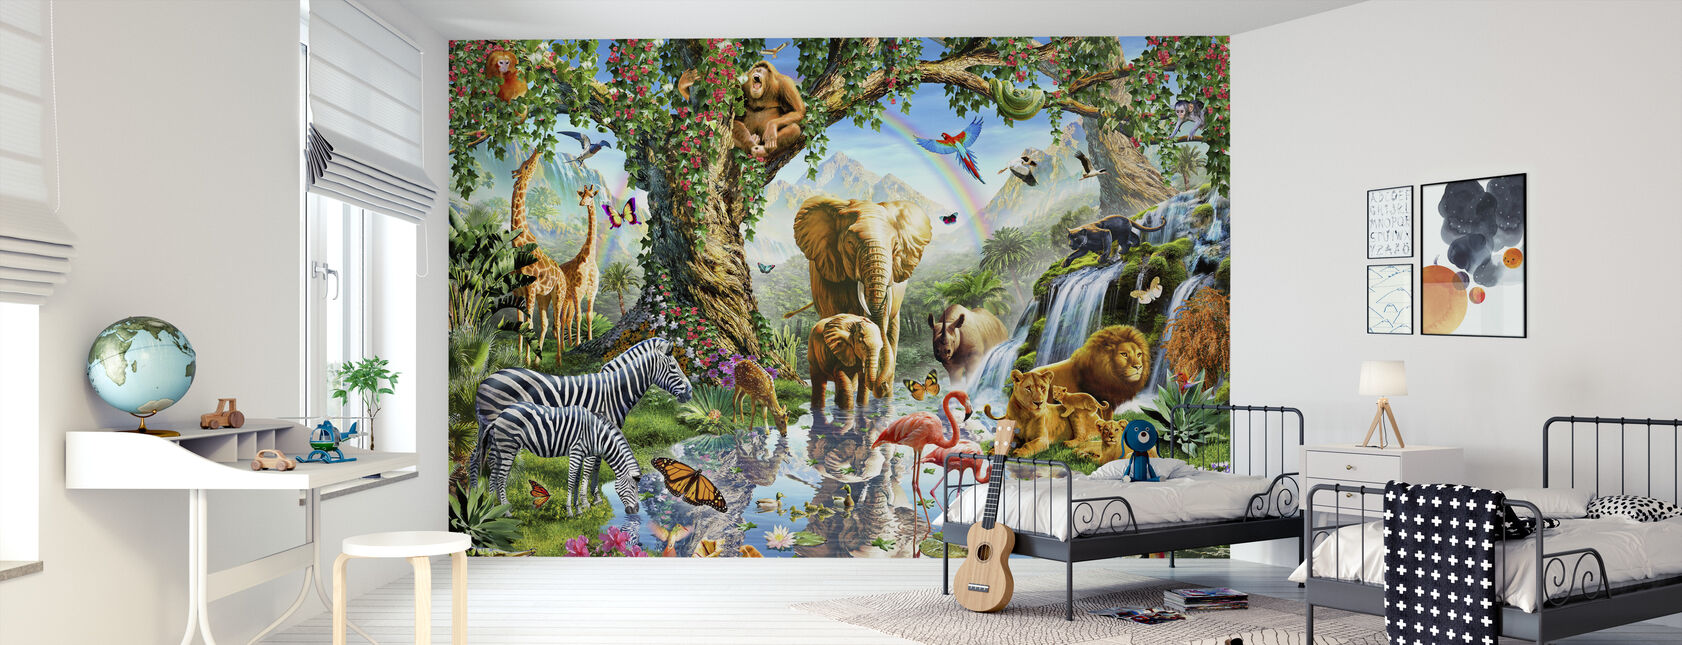 Jungle Lake with wild Animals - Wallpaper - Kids Room